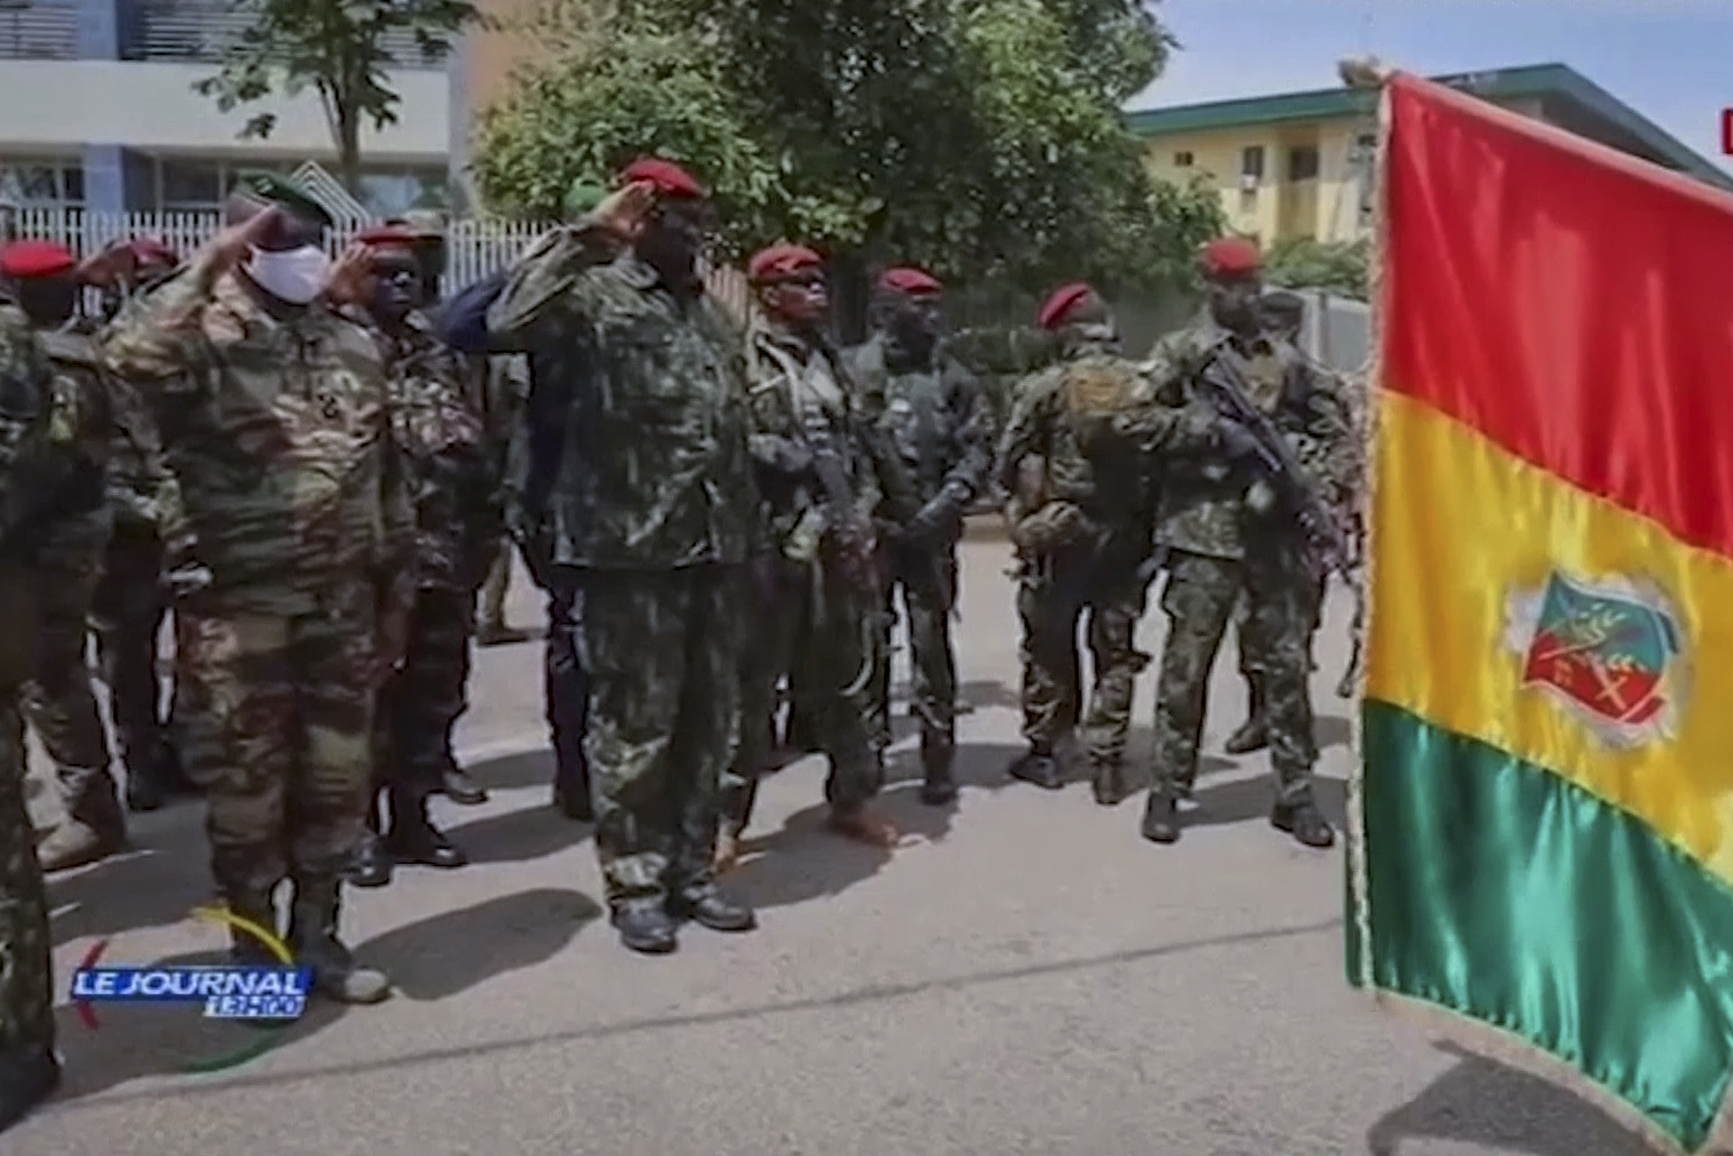 Col. Mamady Doumbouya (center left) salutes members of the armed forces in Conakry, Guinea, on Tuesday.